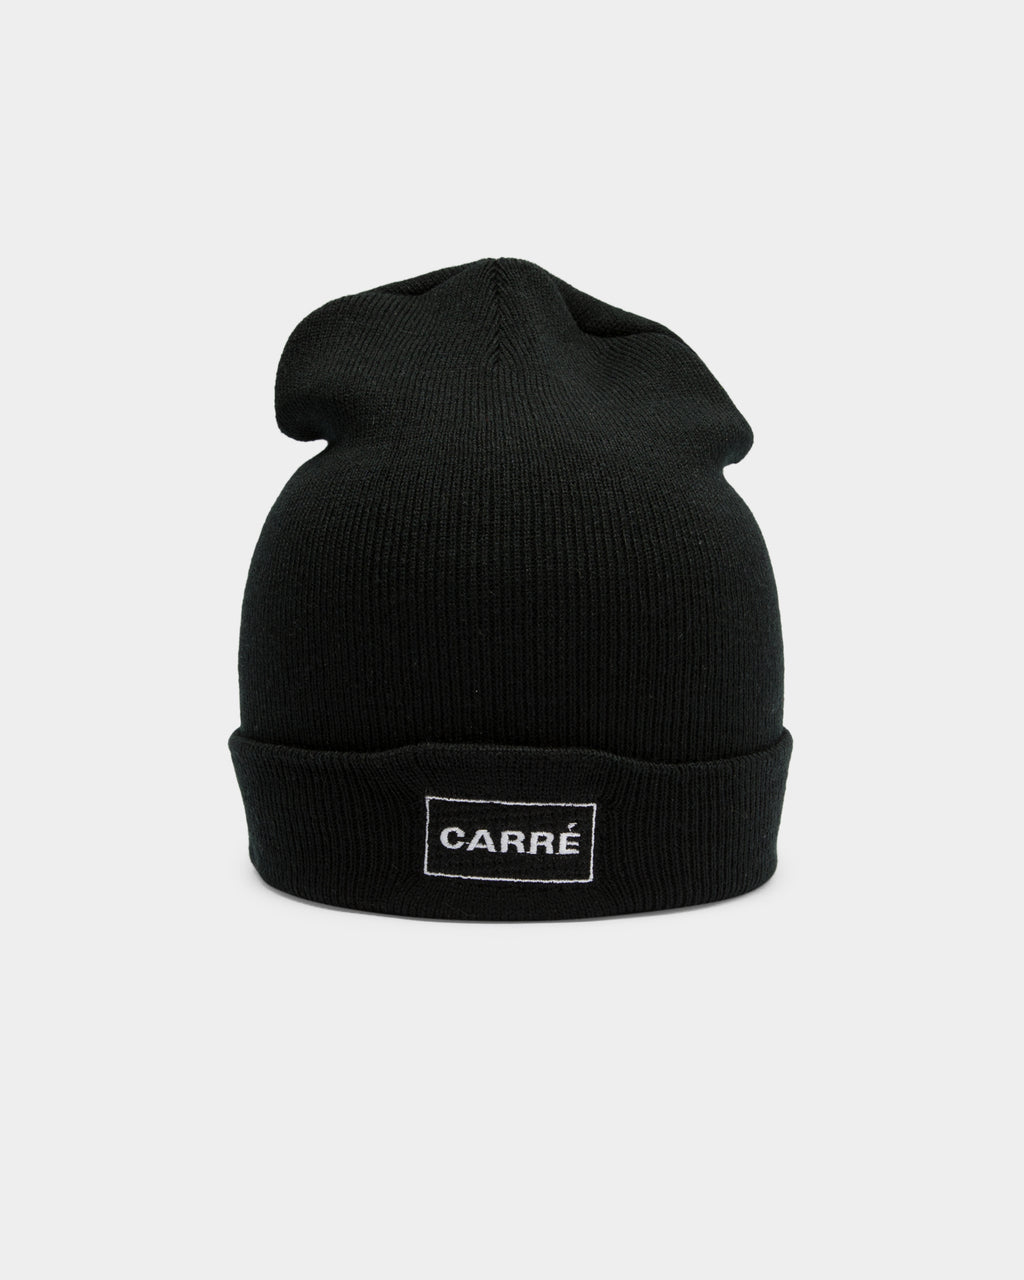 Carré Men's Carré Box Beanie Black